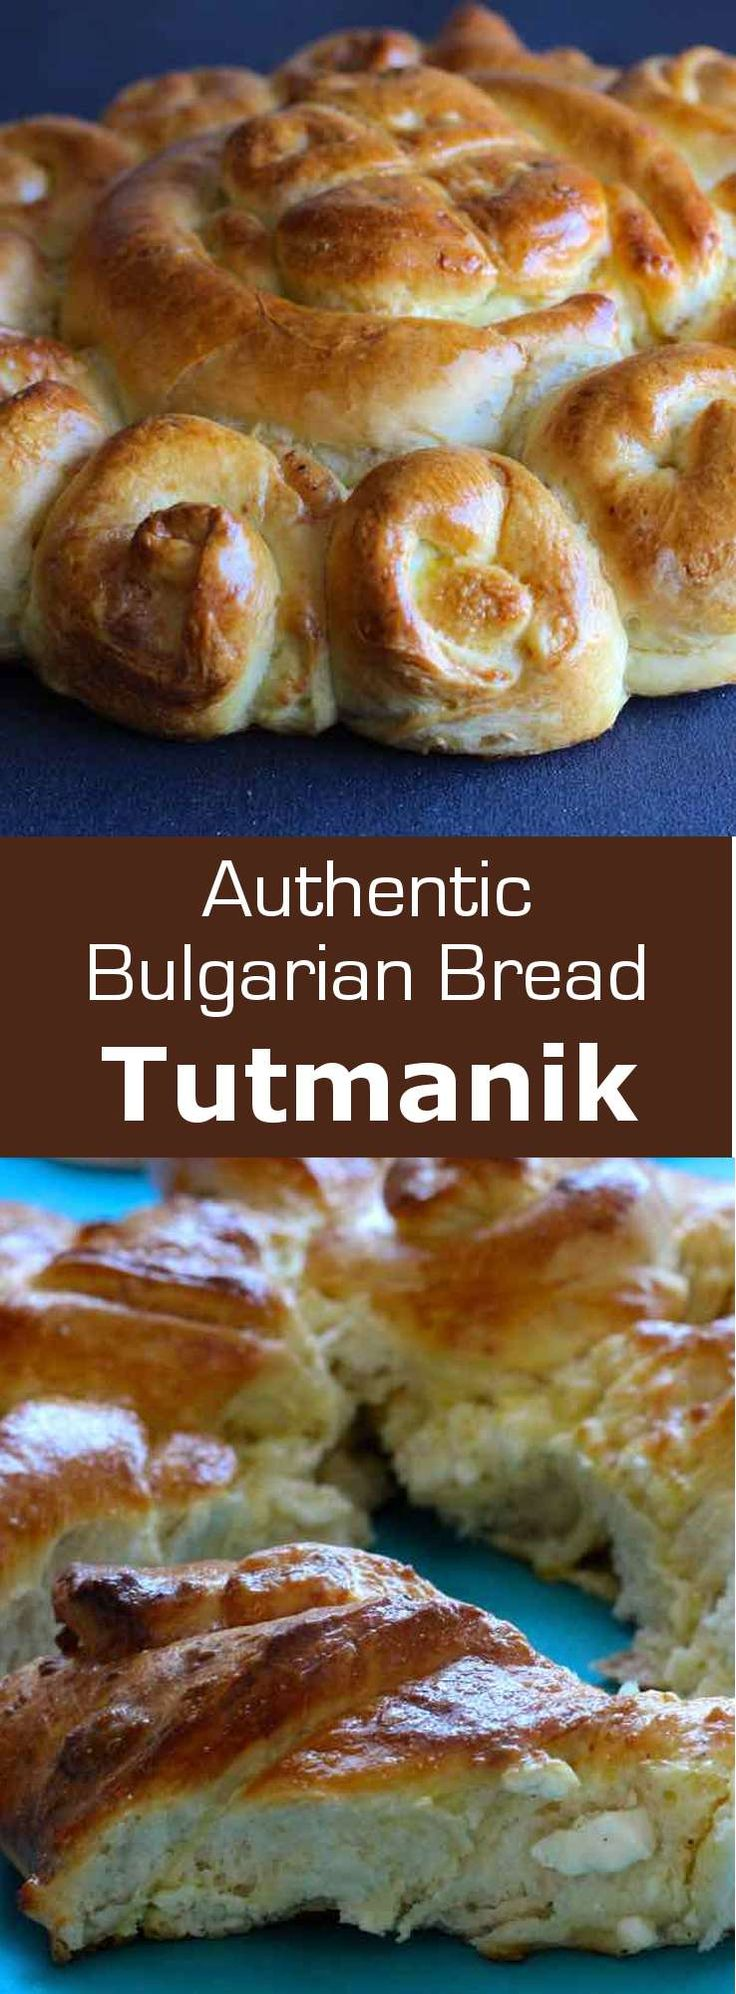 Mesenitza (or tutmanik) is one of the most famous Bulgarian breads. It is stuffed with Bulgarian yoghurt and a local cheese called sirene. #Bulgaria #bread #196flavors